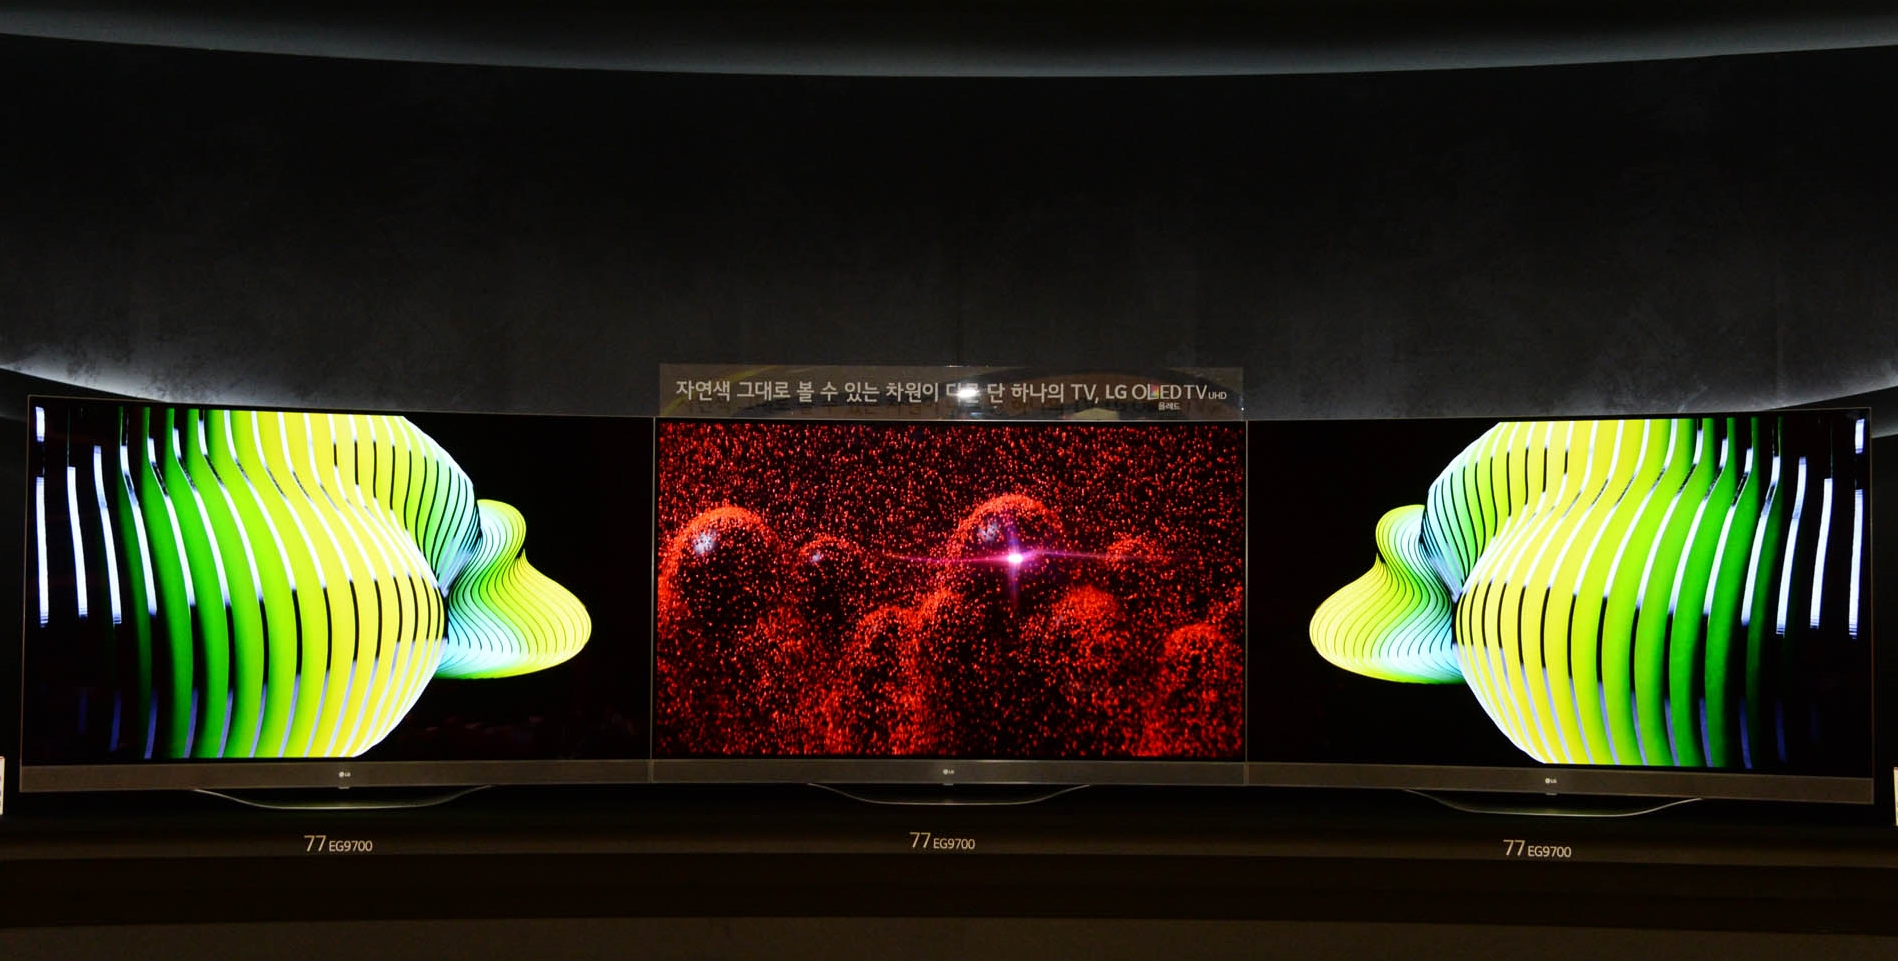 4K OLED TVs on display at LG's 2015 TV Launch Event